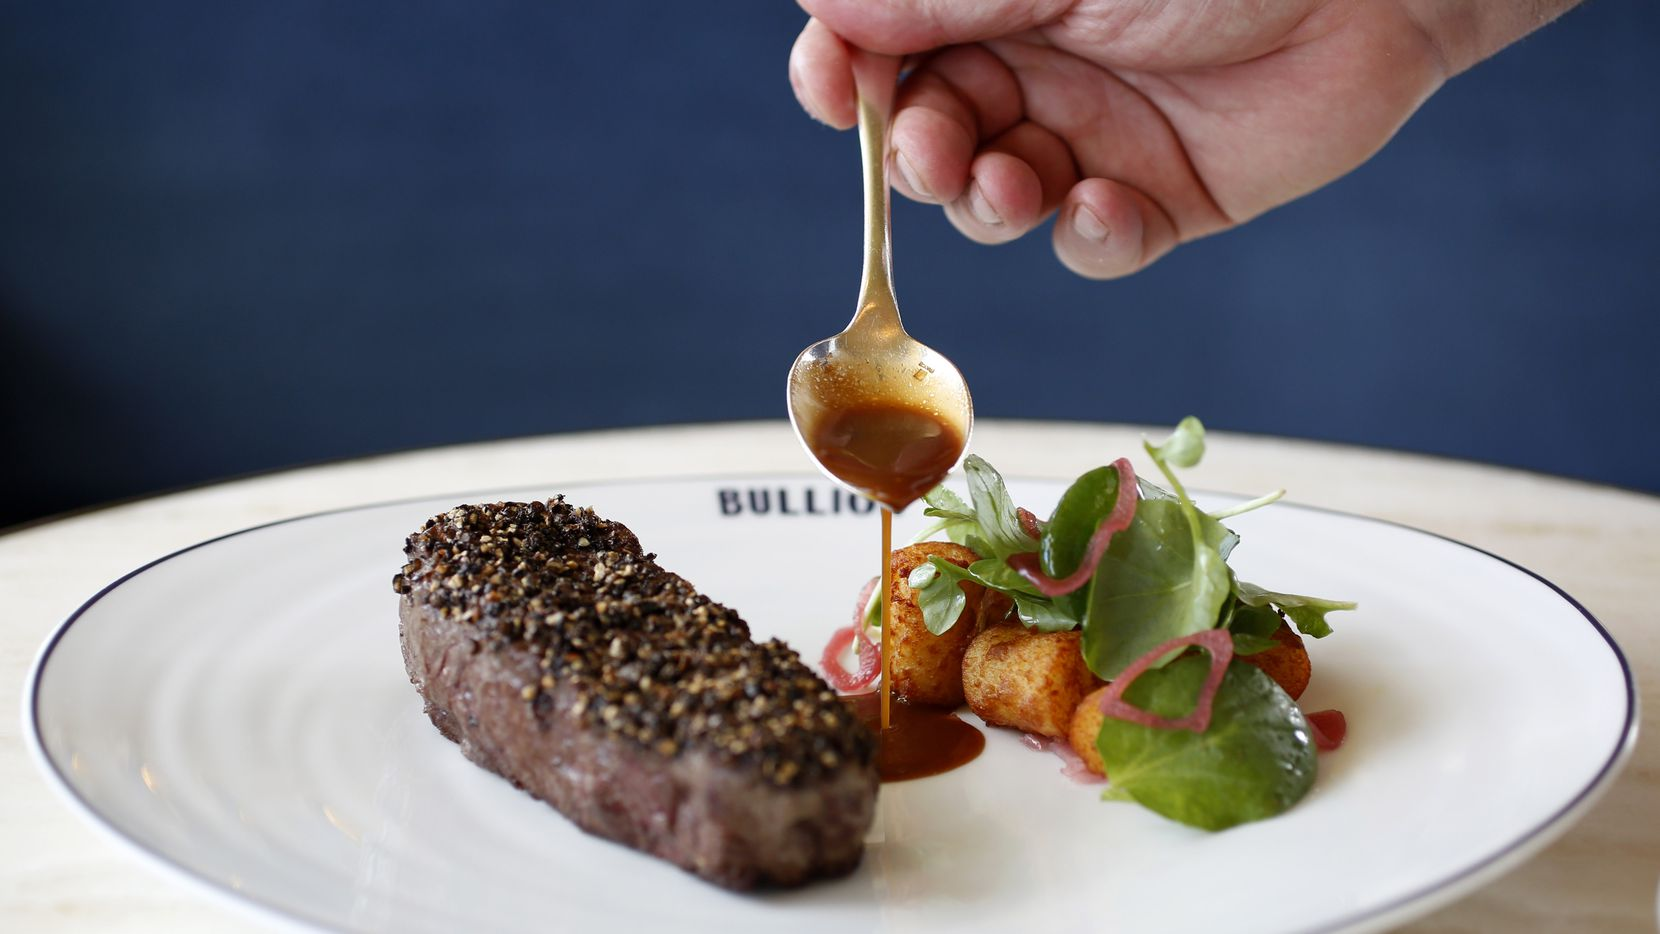 Chef Bruno Davaillon pours sauce on the Bison Au Poivre, photographed at Bullion in 2018. Founding executive chef Davaillon is stepping away from day-to-day operations at the downtown Dallas French restaurant.